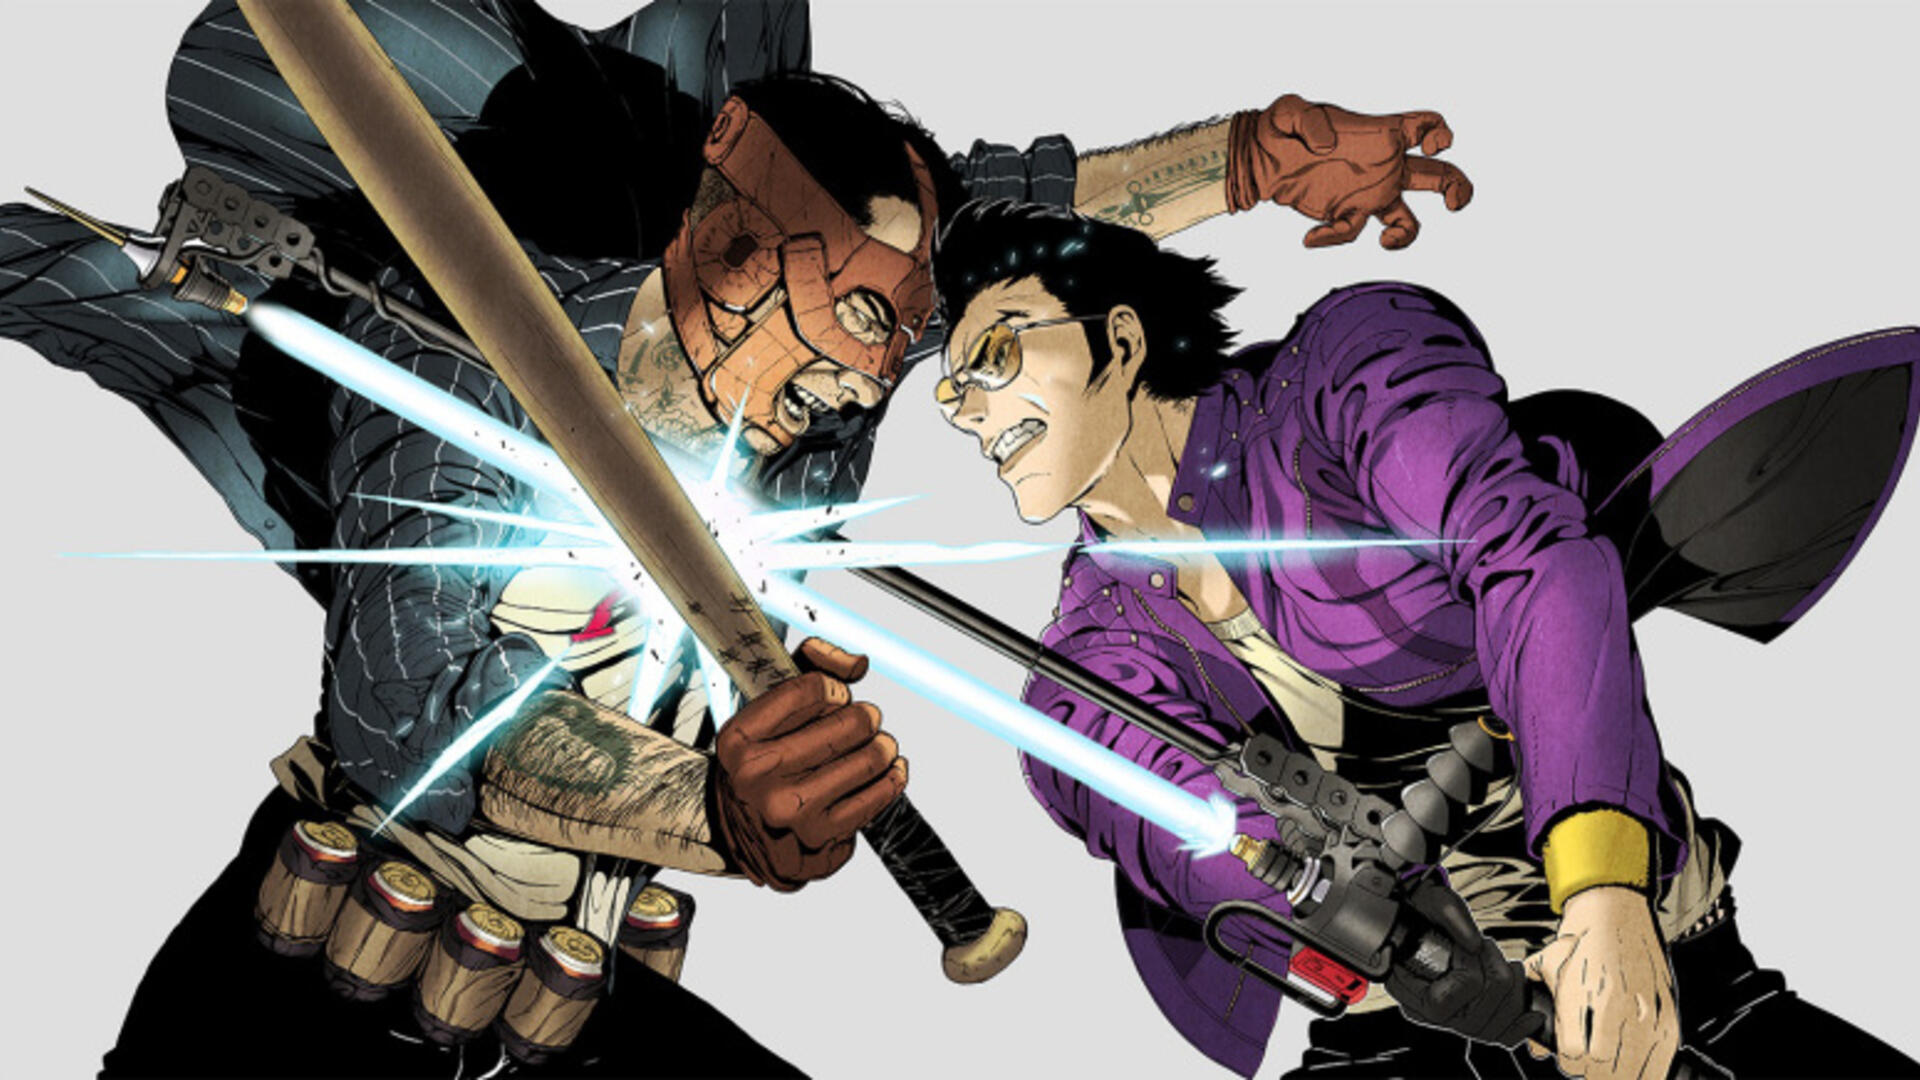 Suda and Swery Host Strange Reveal Event for New Horror Game Collaboration